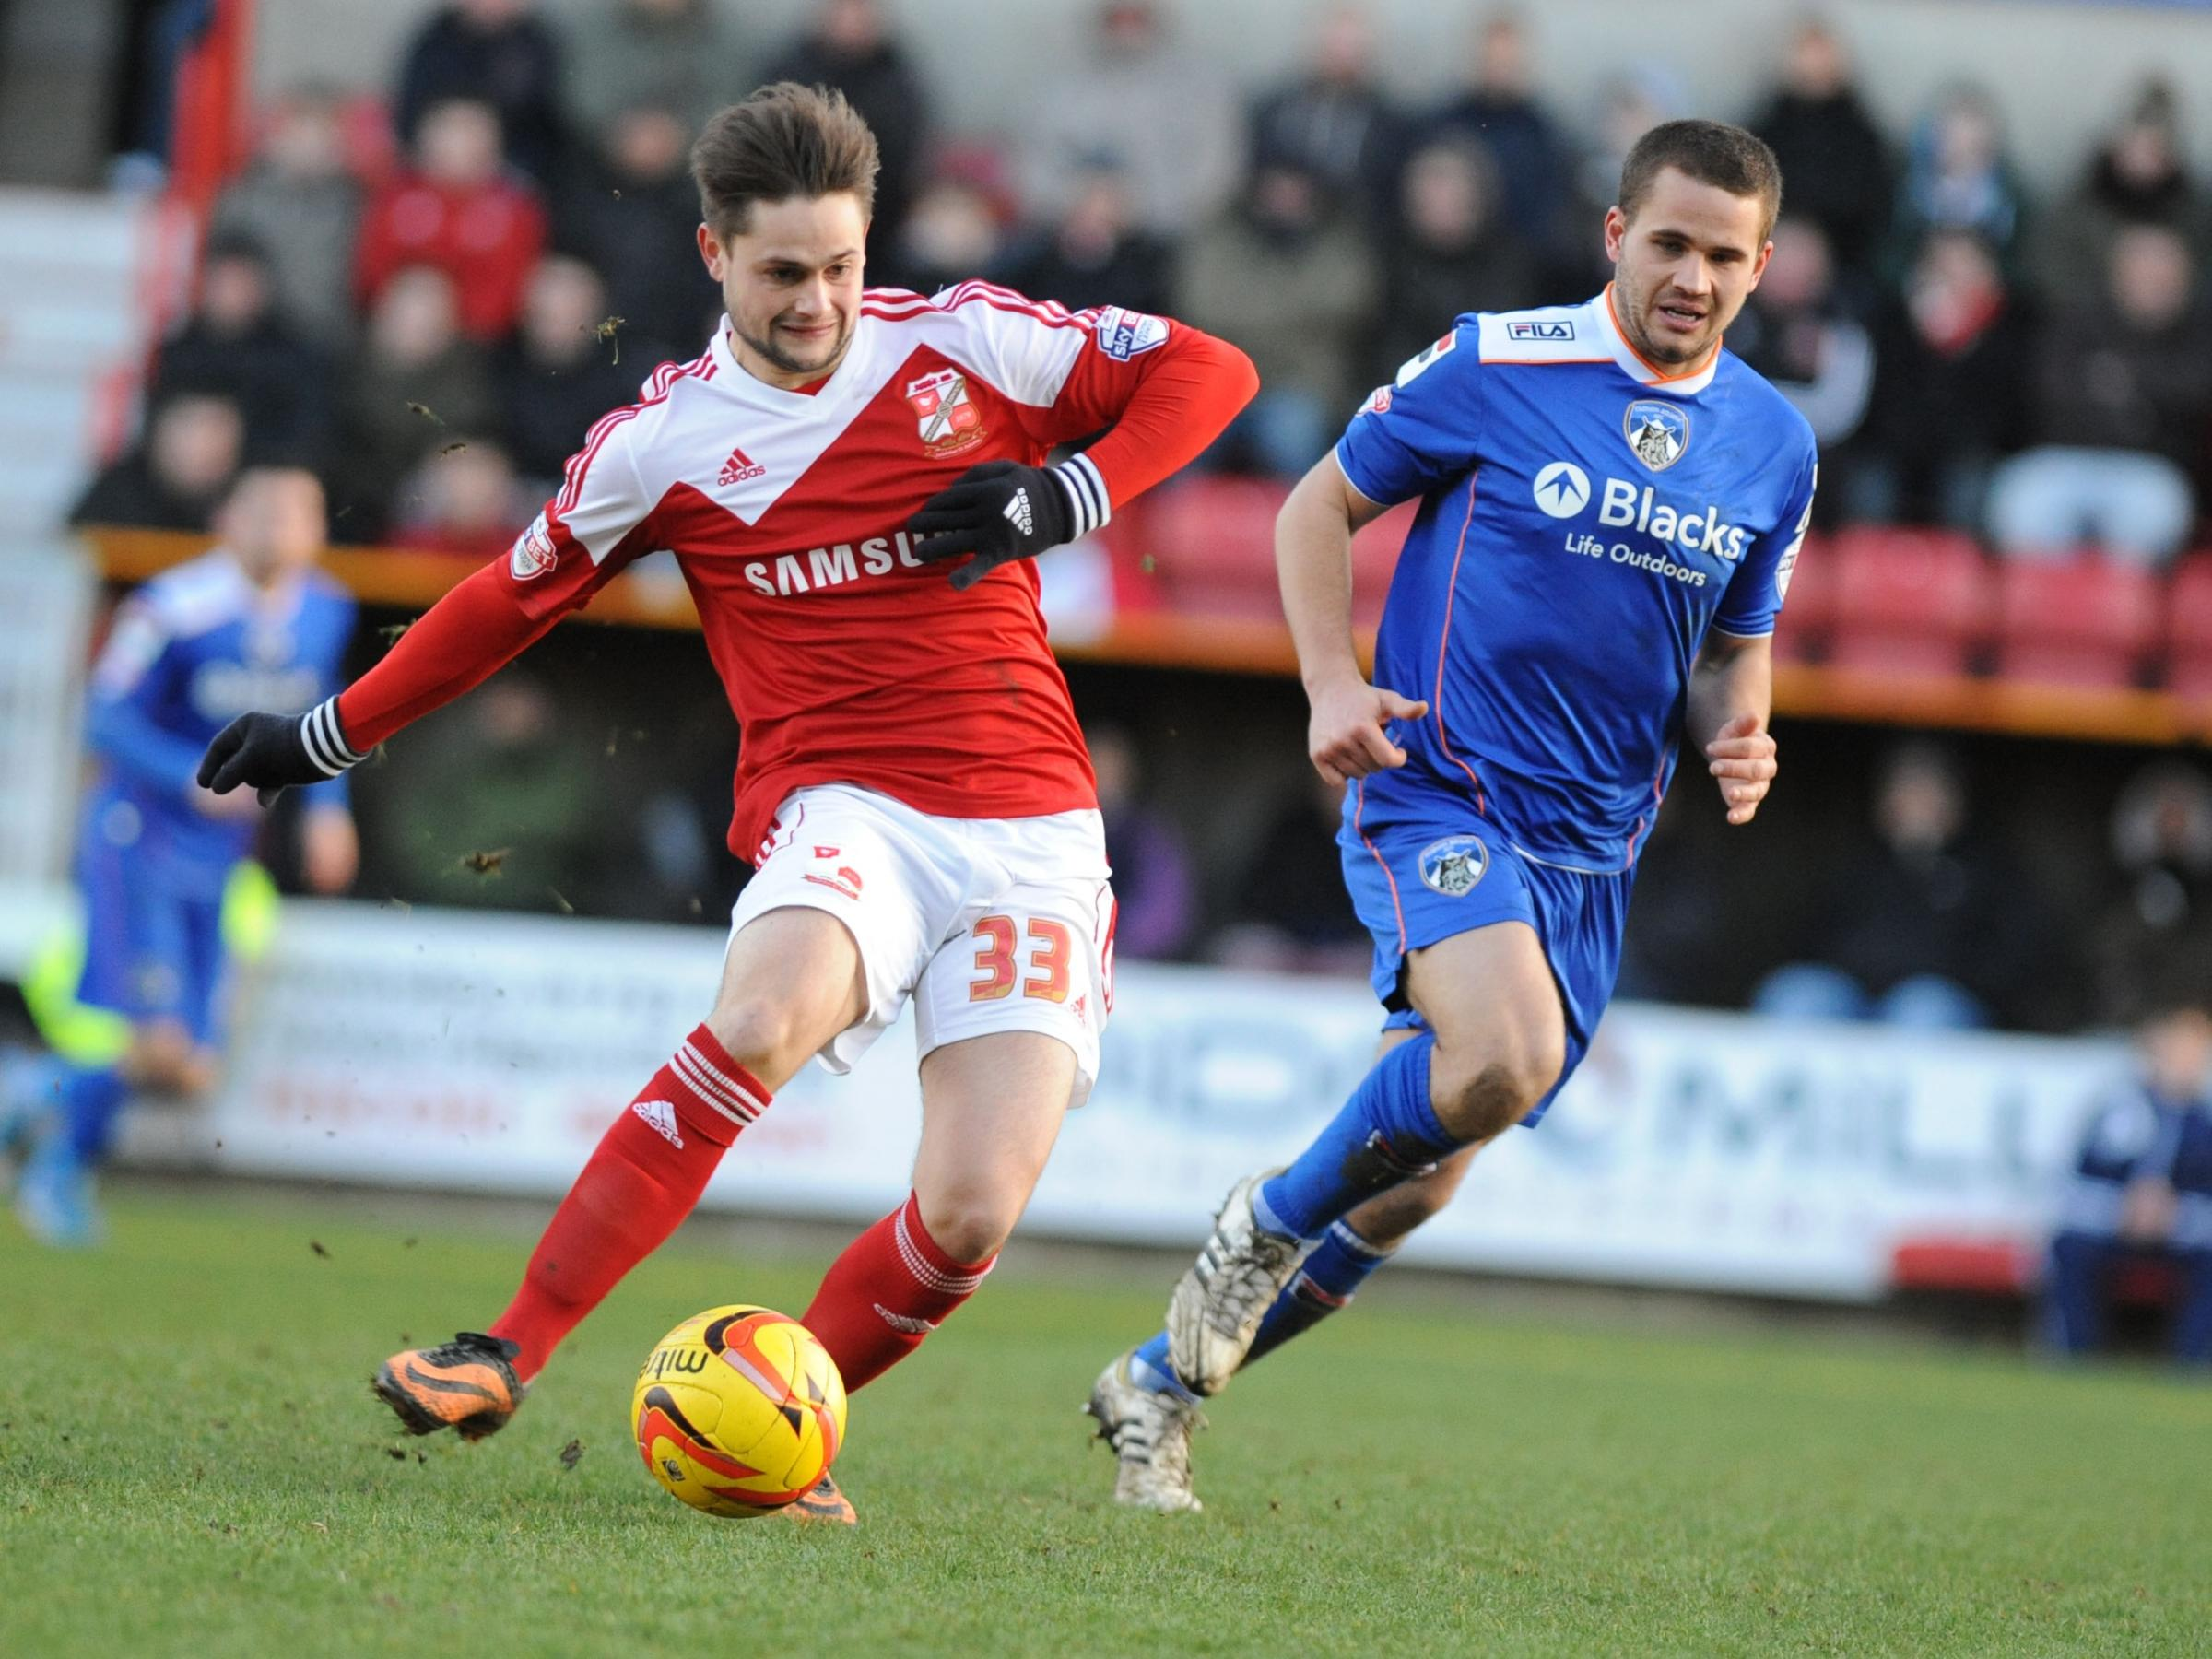 Town striker George Barker wants to make an impression